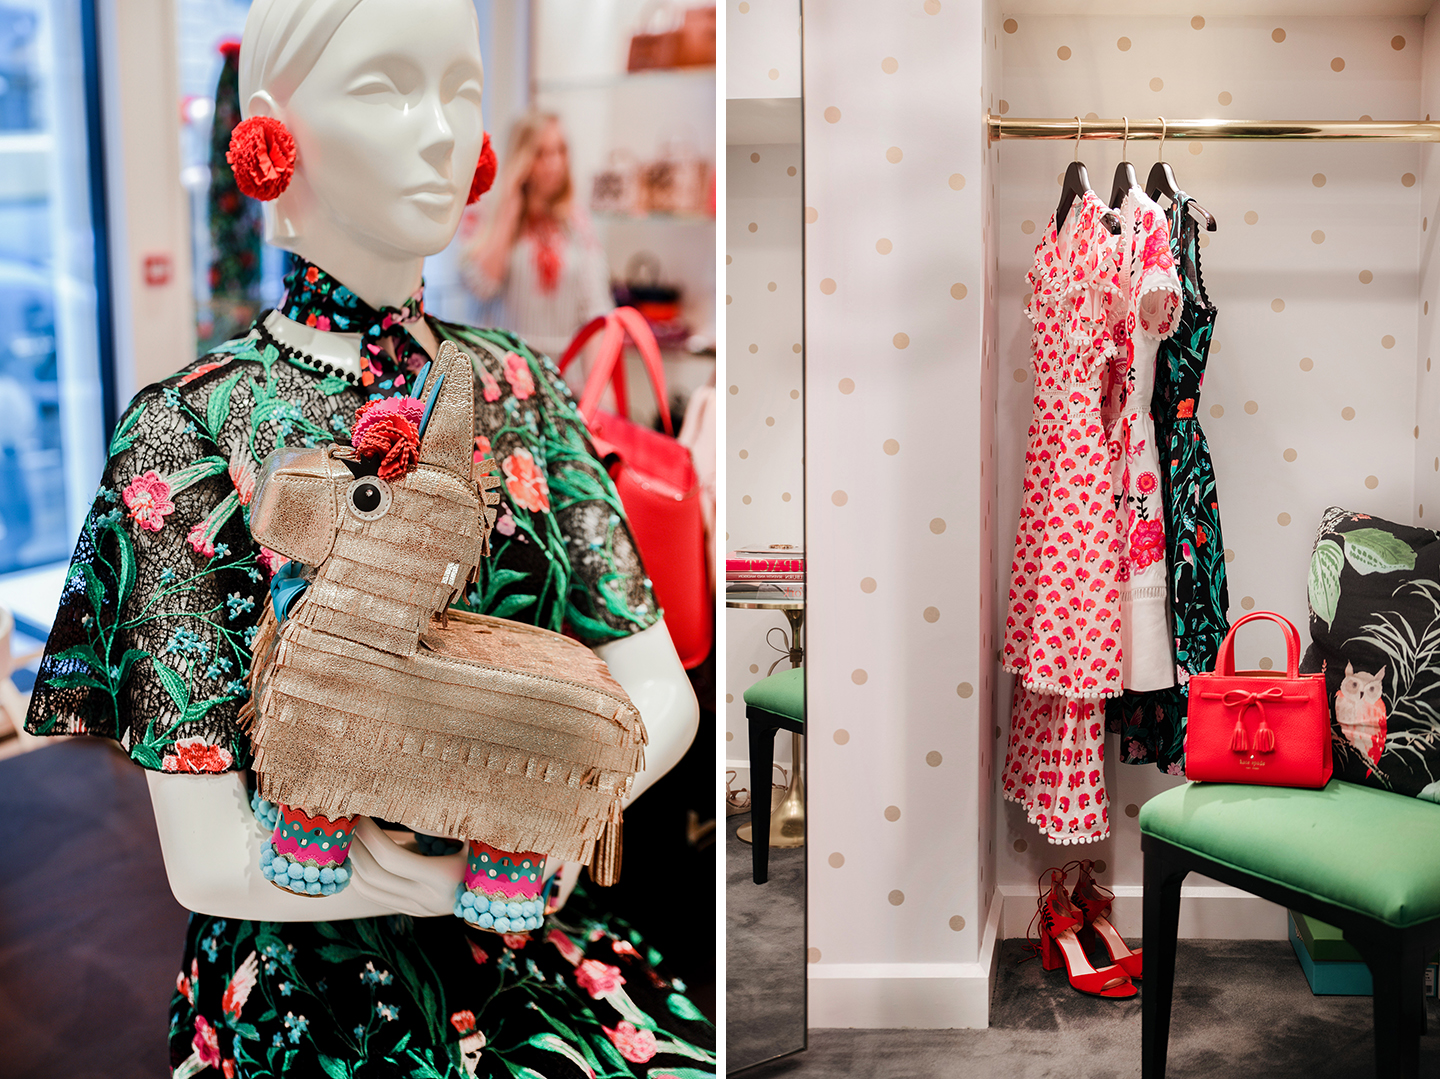 Blog-Mode-And-The-City-Lifestyle-Kate-Spade-Paris-418-rue-saint-honore-14-montage